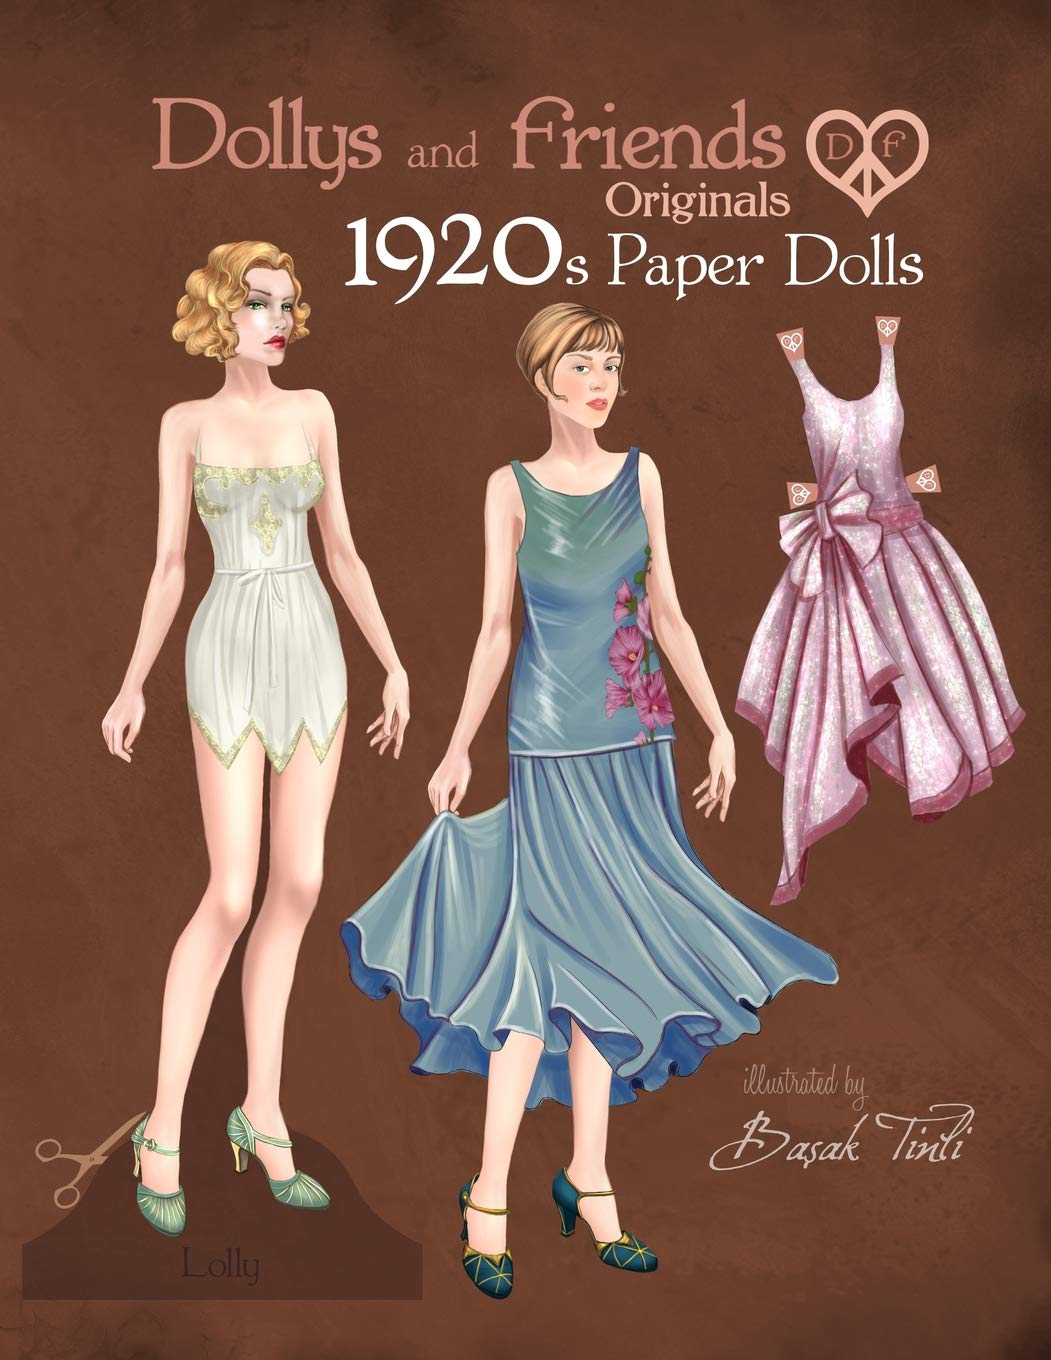 Amazon Com Dollys And Friends Originals 1920s Paper Dolls Roaring Twenties Vintage Fashion Paper Doll Collection 9781077603127 Friends Dollys And Tinli Basak Books